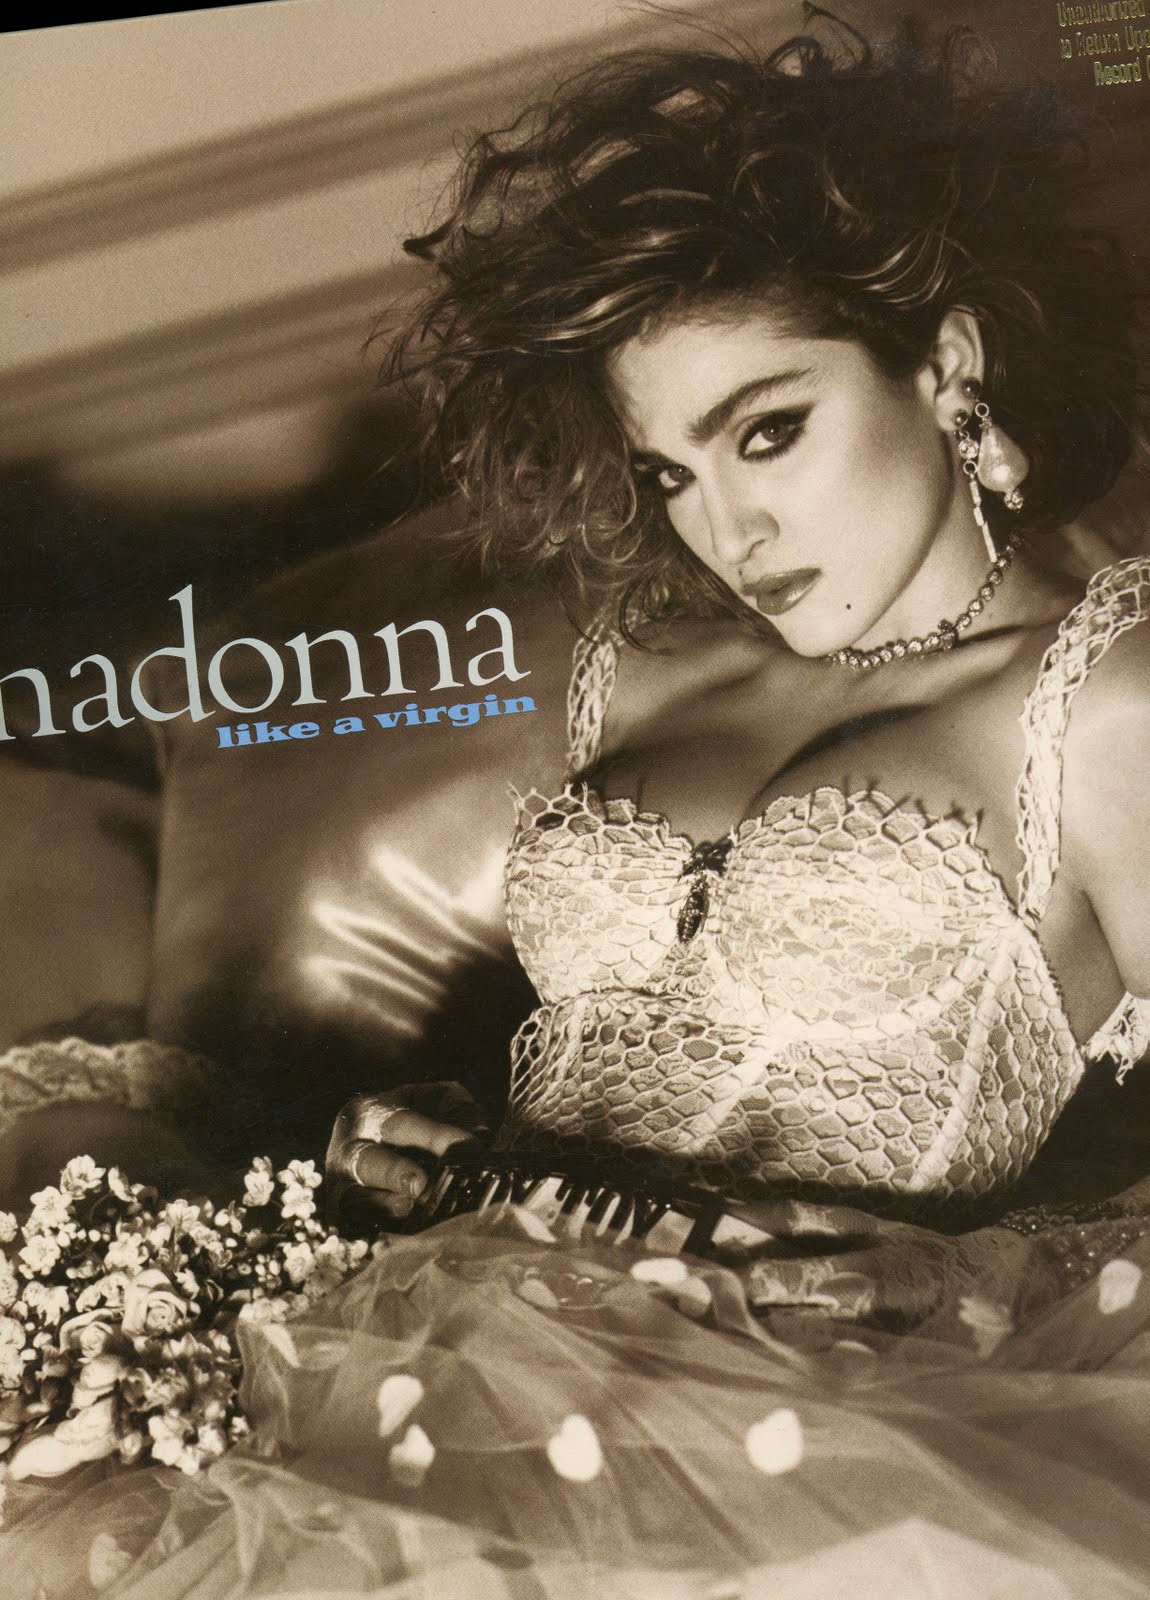 Pud whacker s madonna scrapbook like a virgin promotional copy